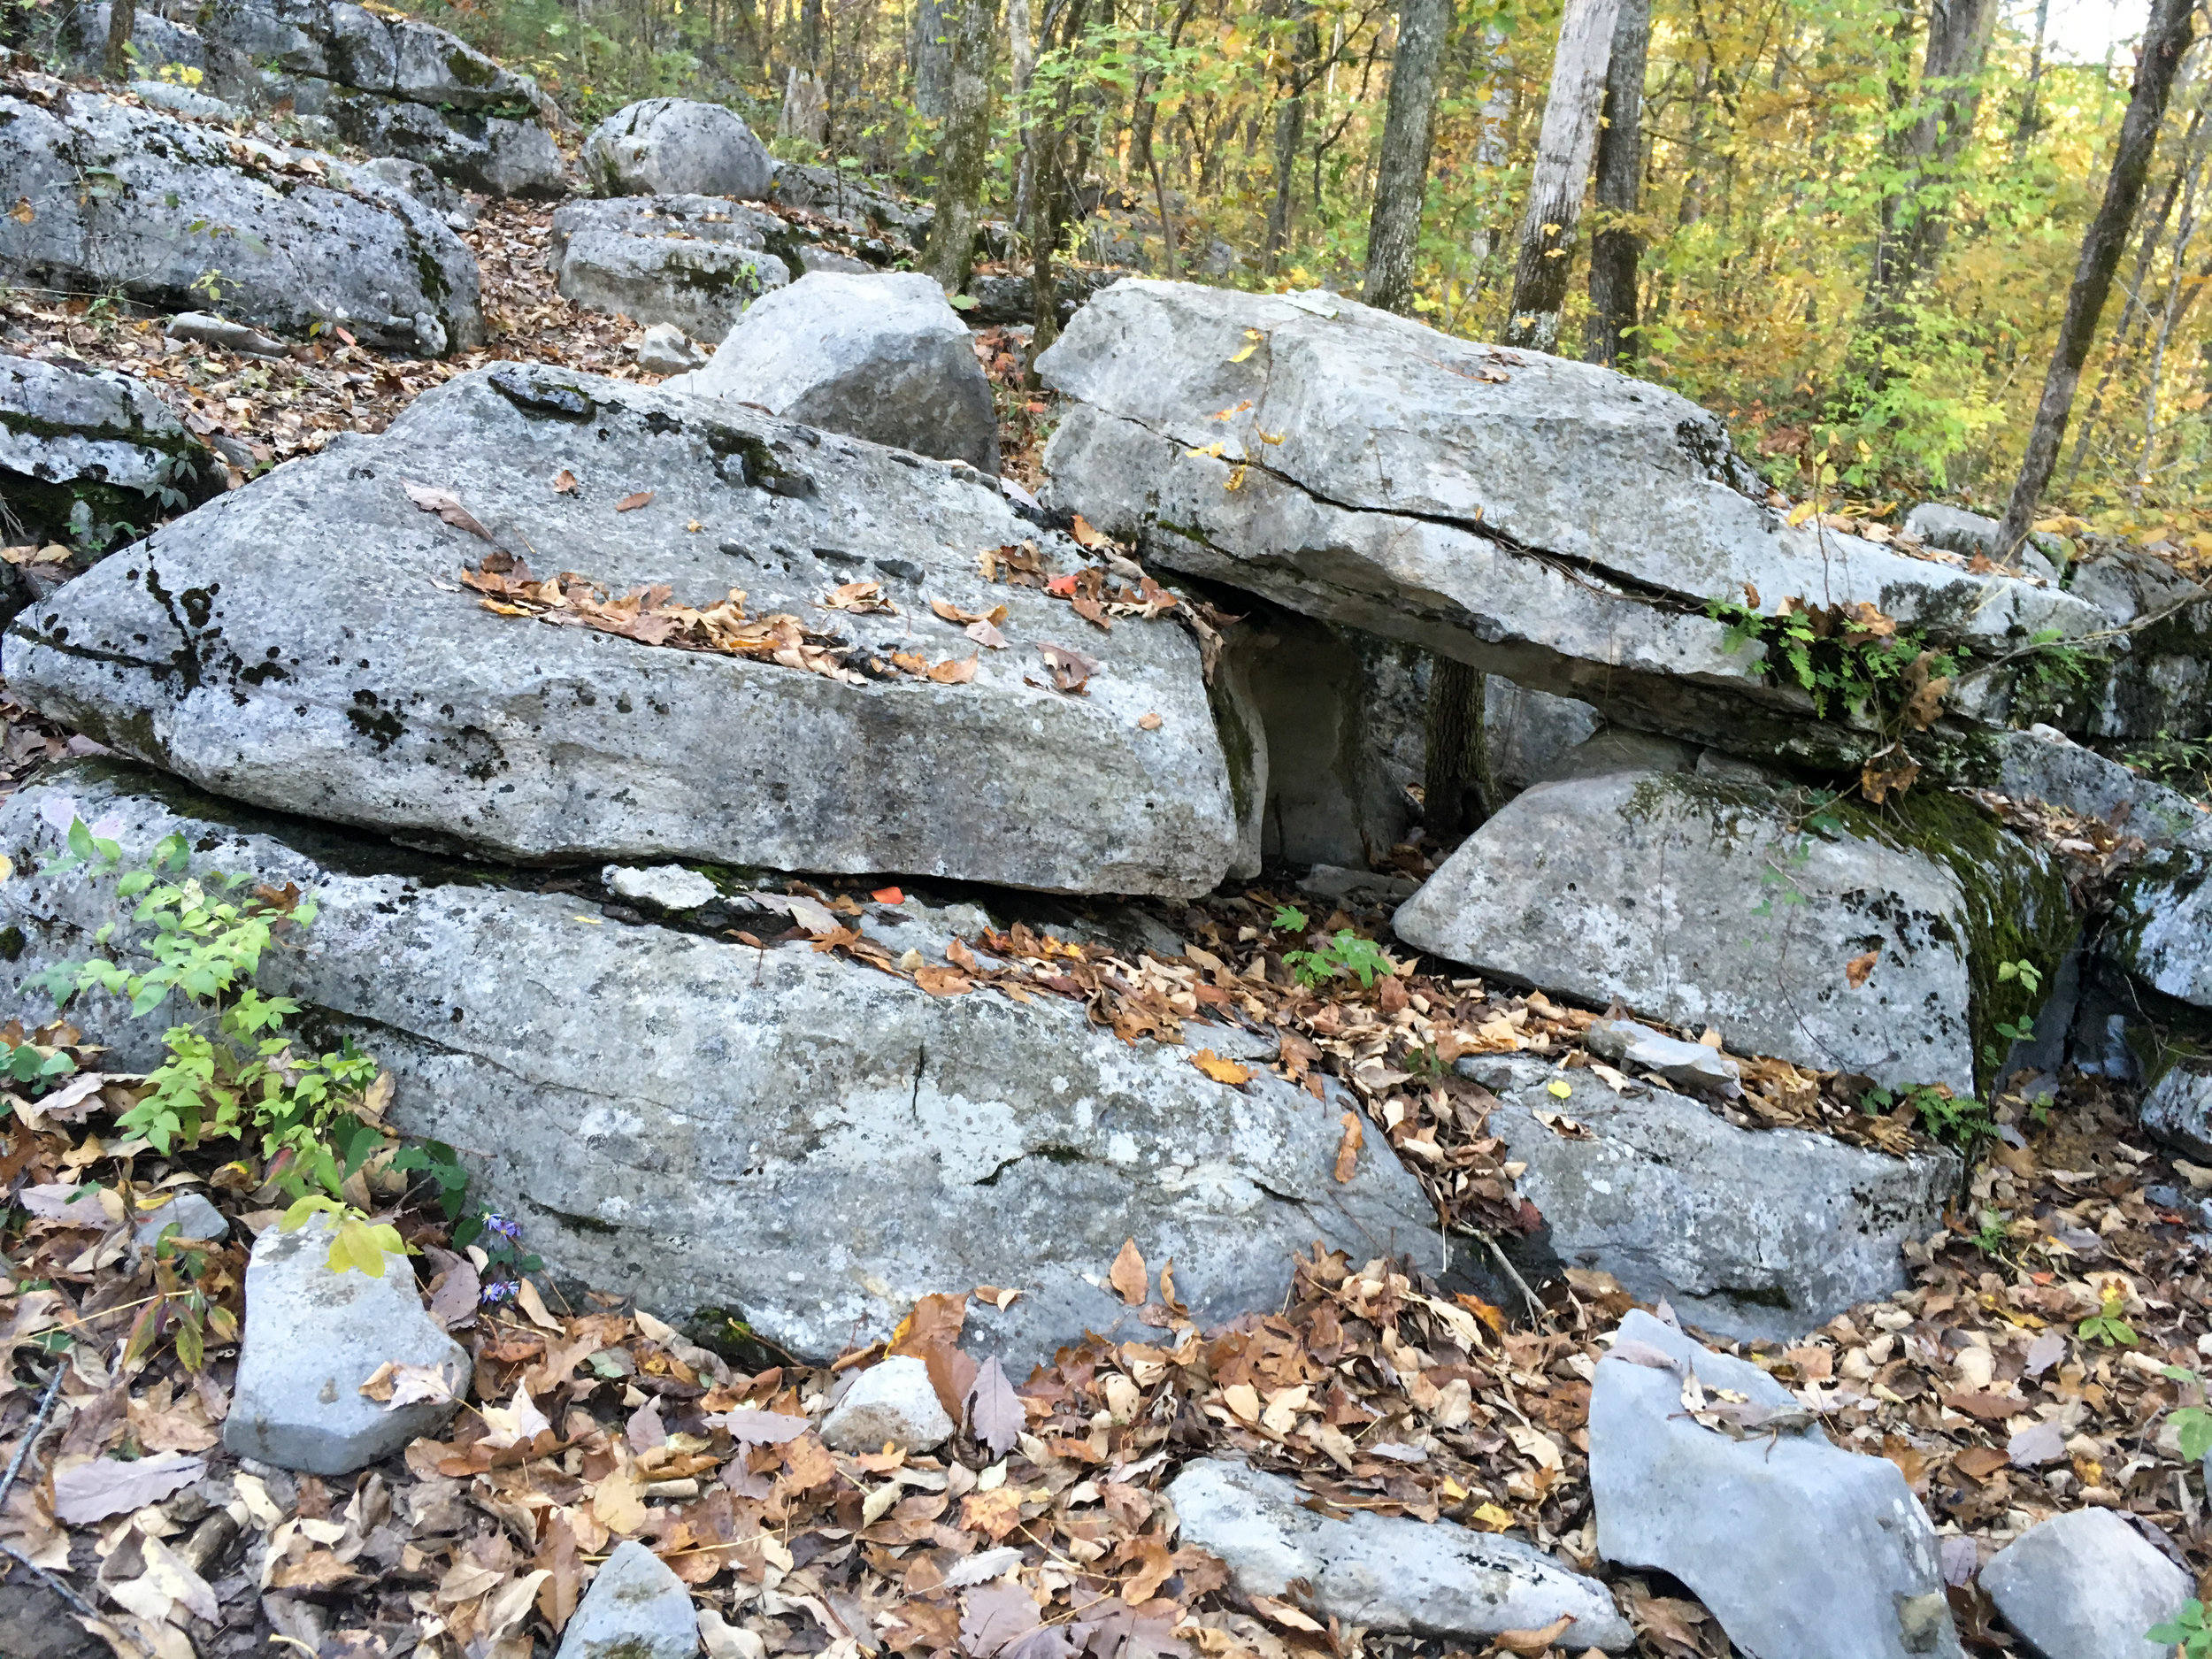 Outside the caverns, near the hiking trails; November 6, 2018